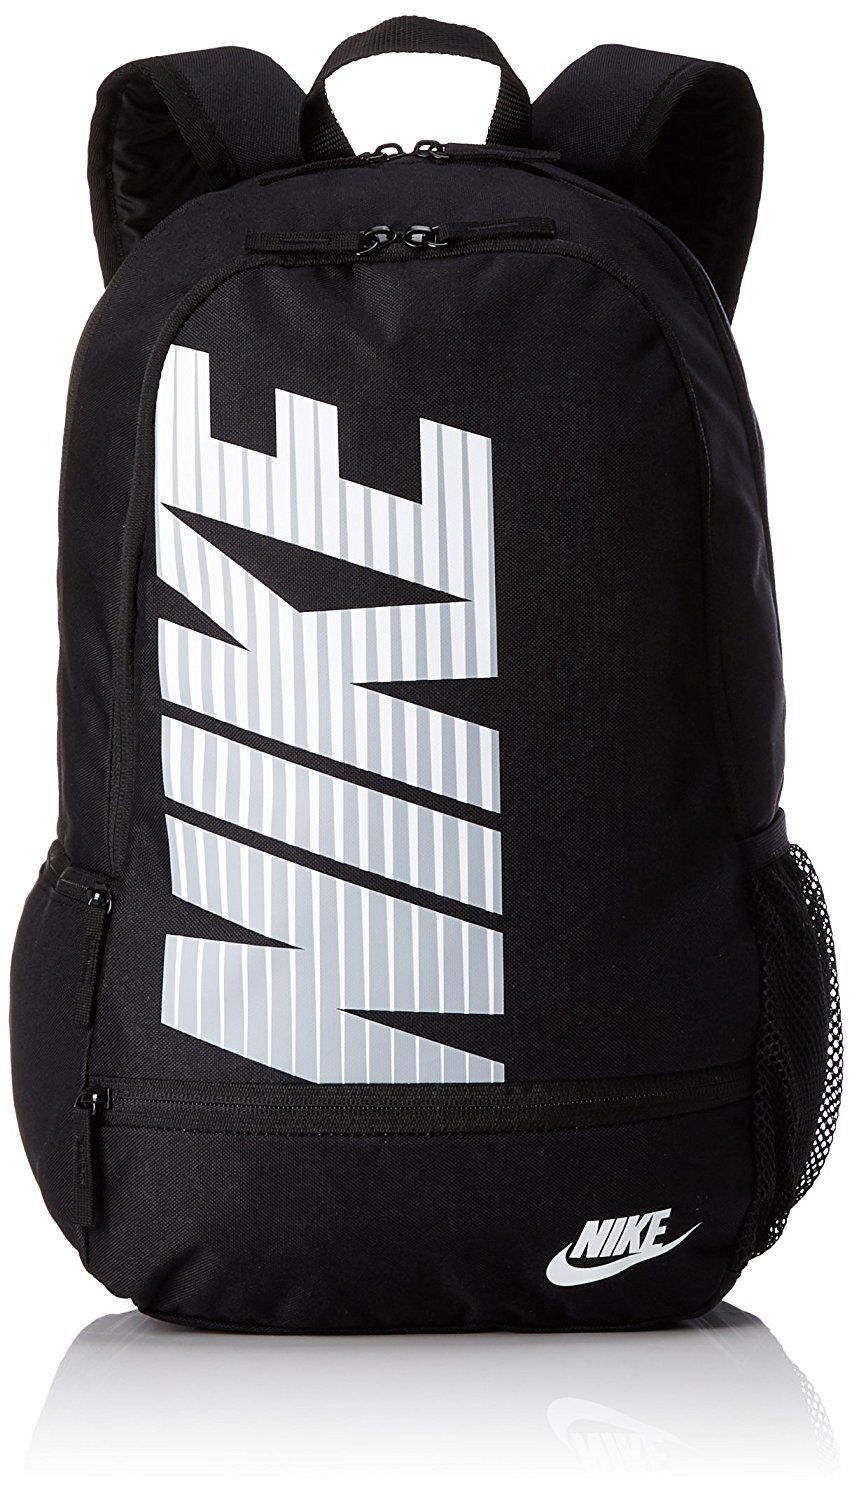 3a727ae5555 Nike Classic North Backpack - Black White. Dimentions - 50 x 25 x 5 cm.  Capacity - 22 Litre. Amazon.co.uk